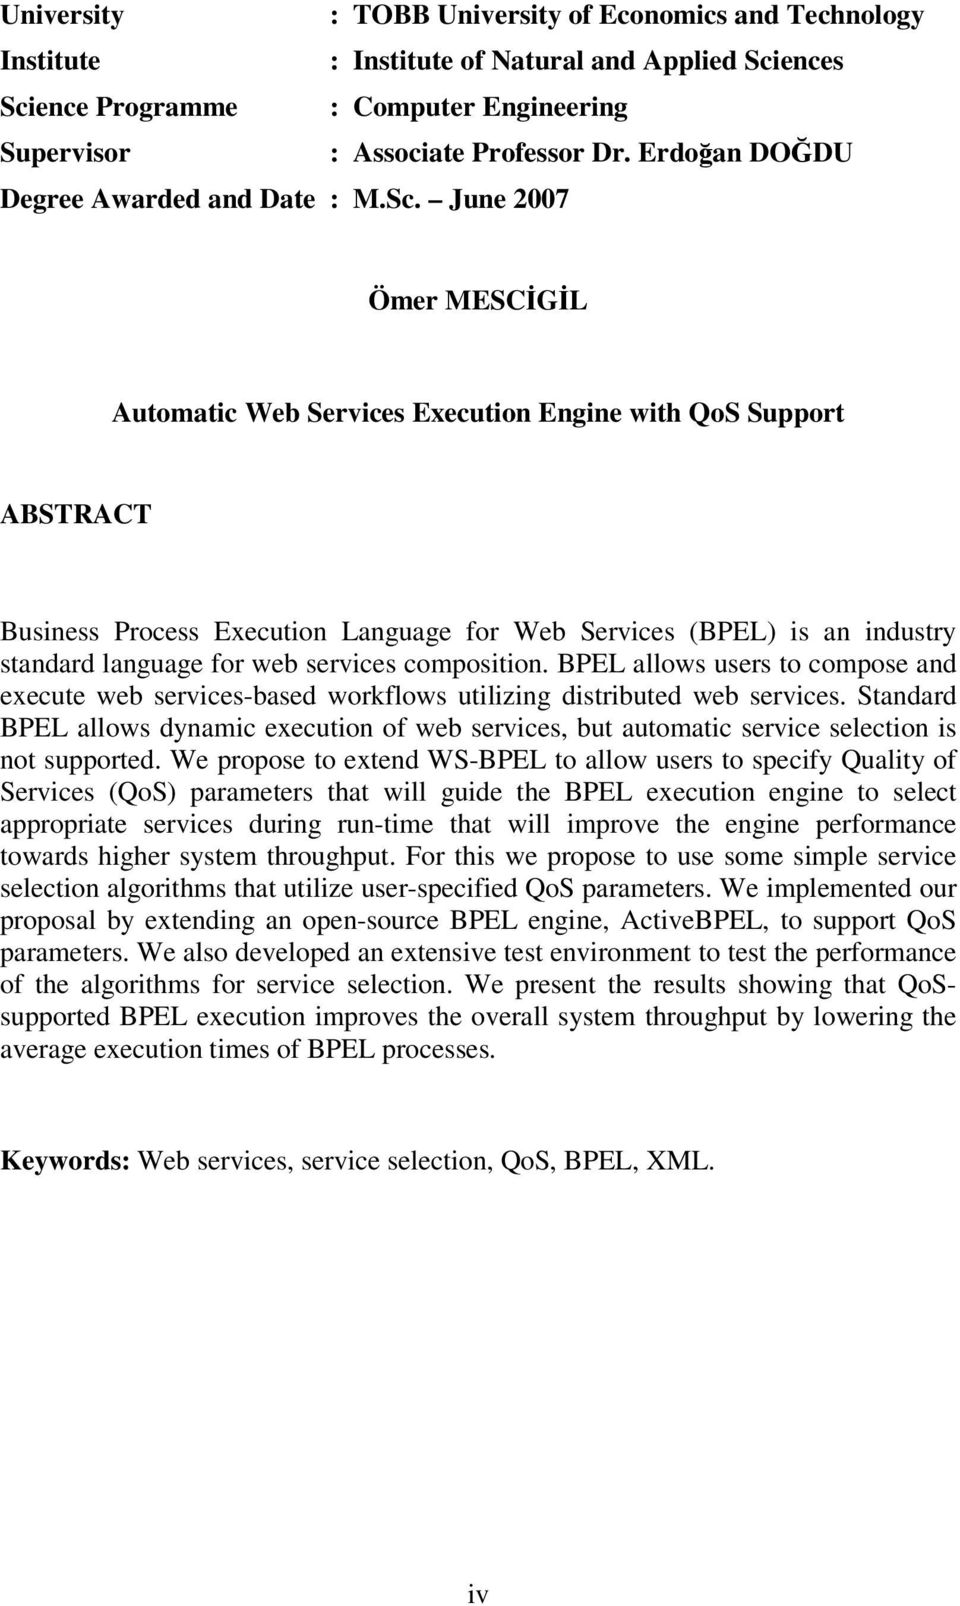 June 2007 Ömer MESCİGİL Automatic Web Services Execution Engine with QoS Support ABSTRACT Business Process Execution Language for Web Services (BPEL) is an industry standard language for web services